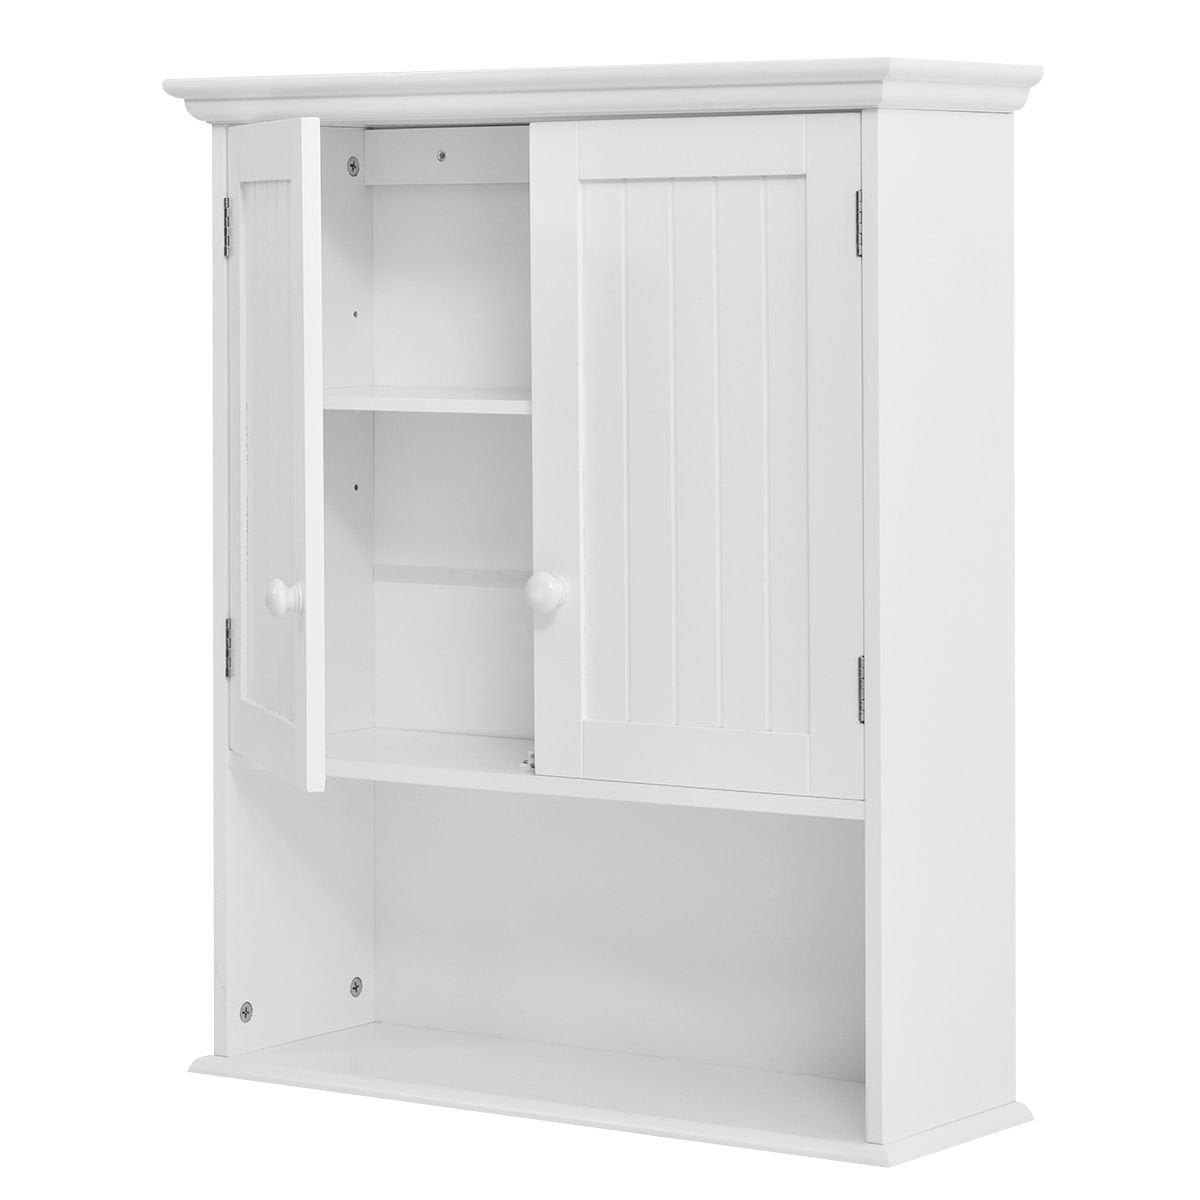 White Wall Mount Bathroom Cabinet with Storage Shelf